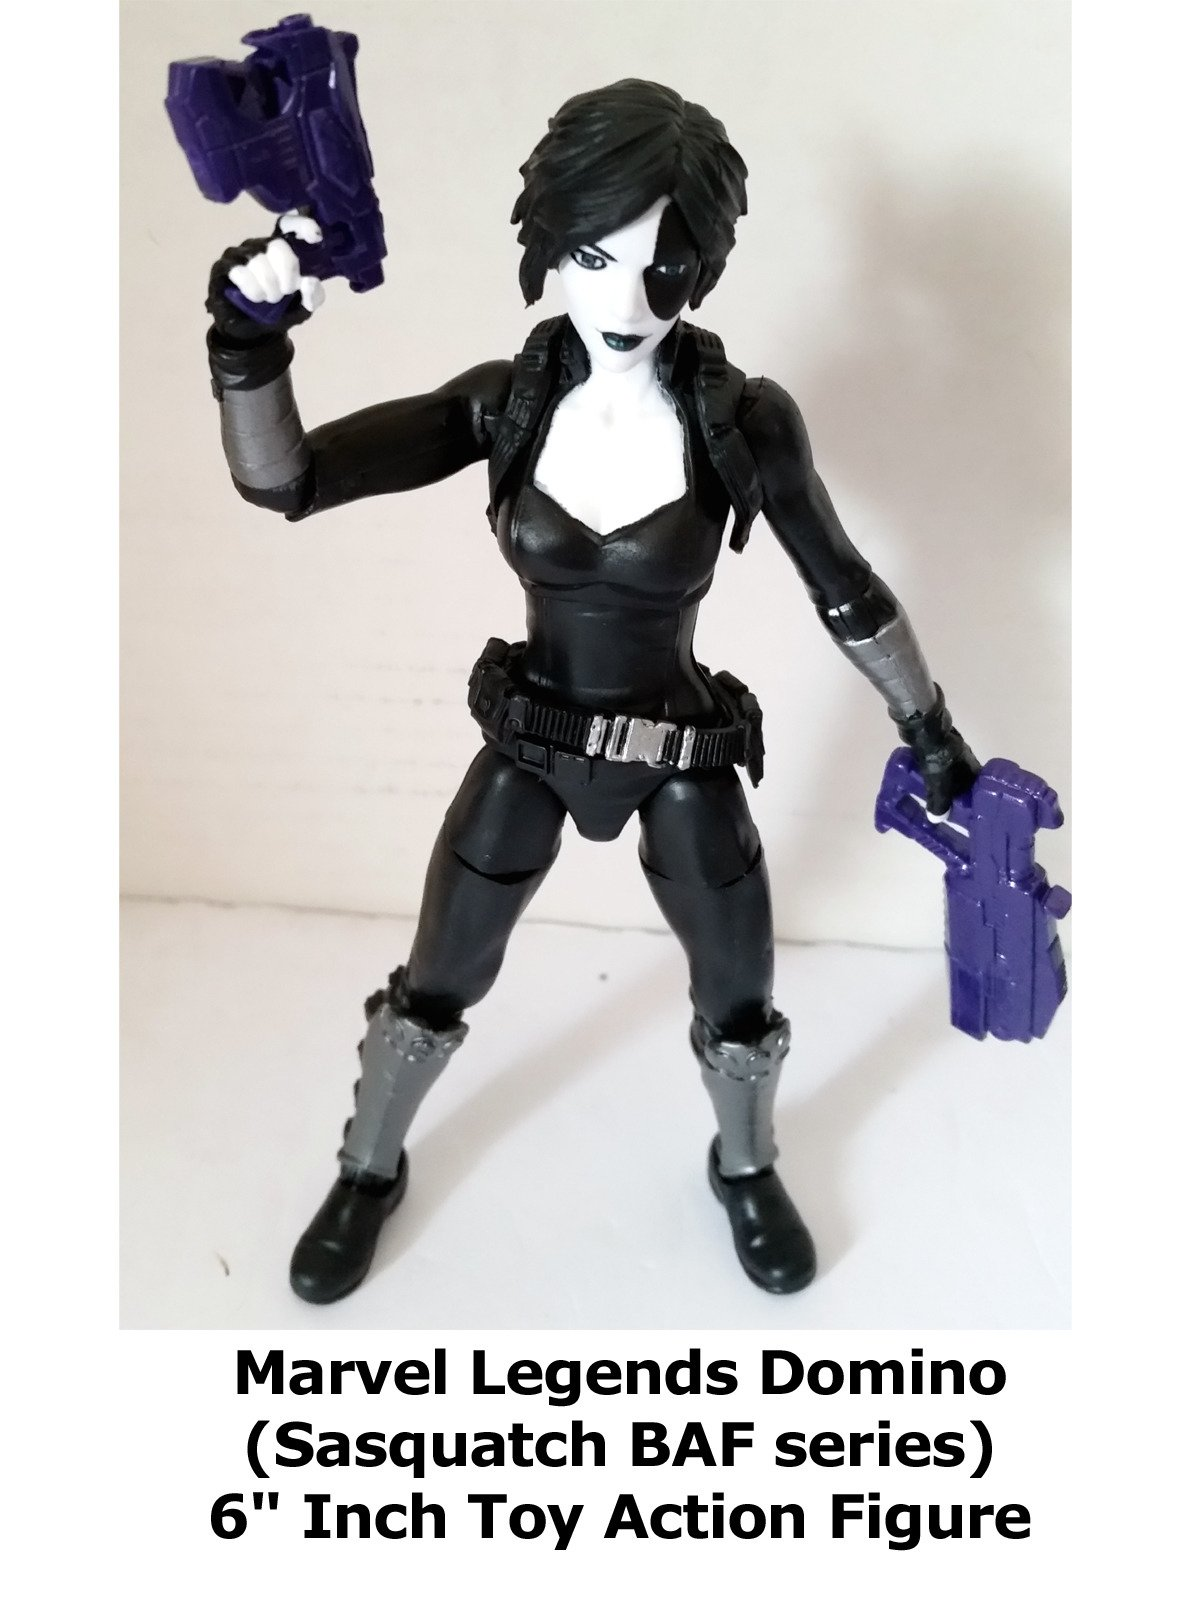 "Clip: Marvel Legends Domino (Sasquatch BAF series) 6"" Inch Toy Action Figure"